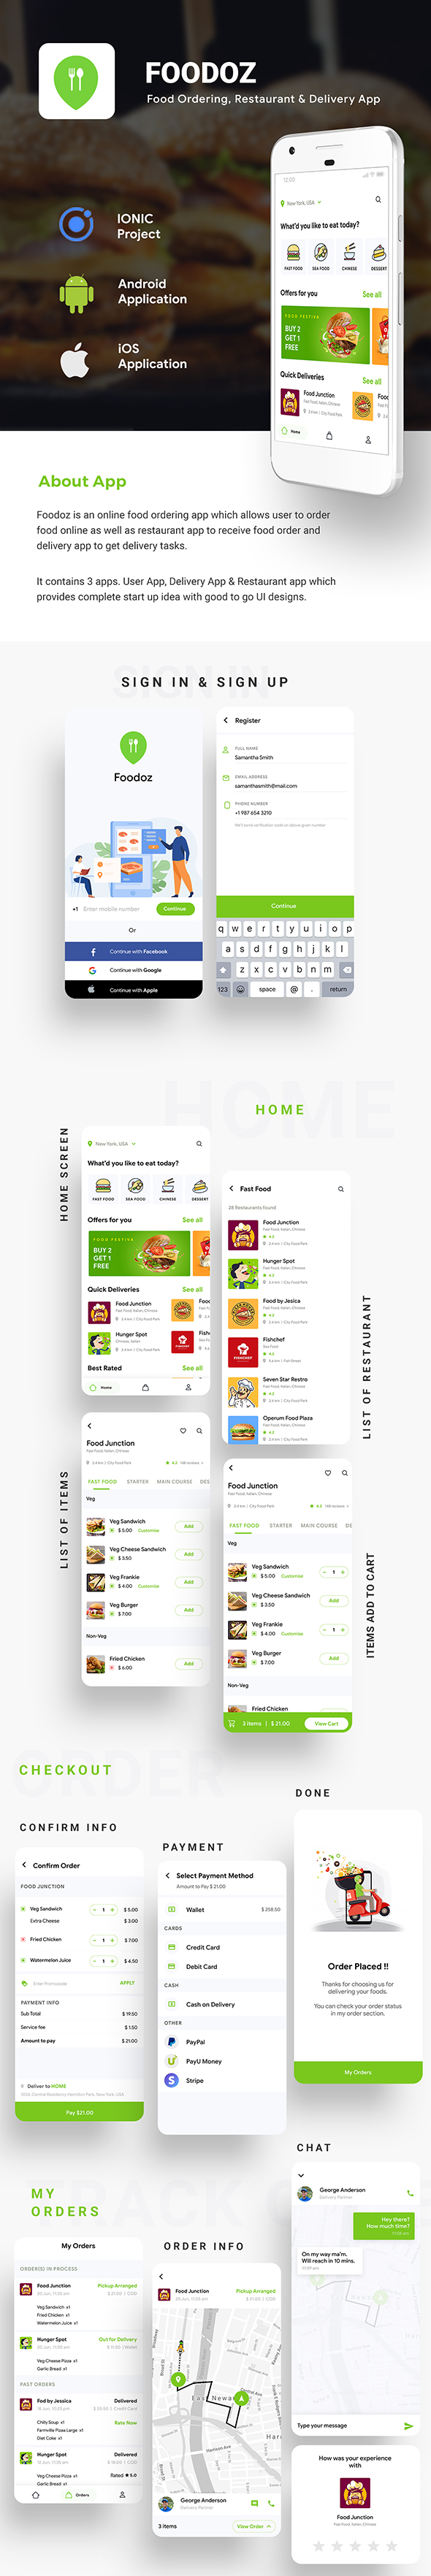 Multi Restaurant Food Ordering App | Food Delivery App | 3 Apps | Android + iOS App Template| IONIC - 1